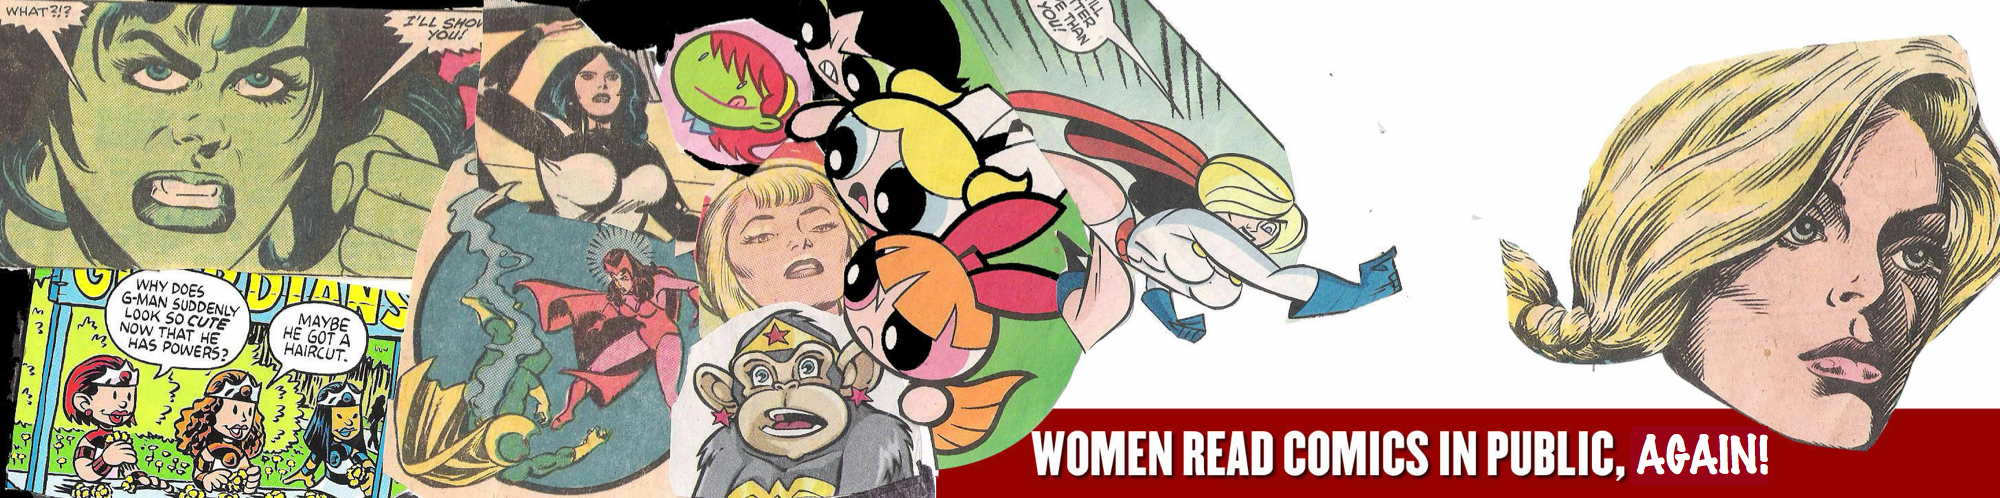 Women Read Comics in Public 3